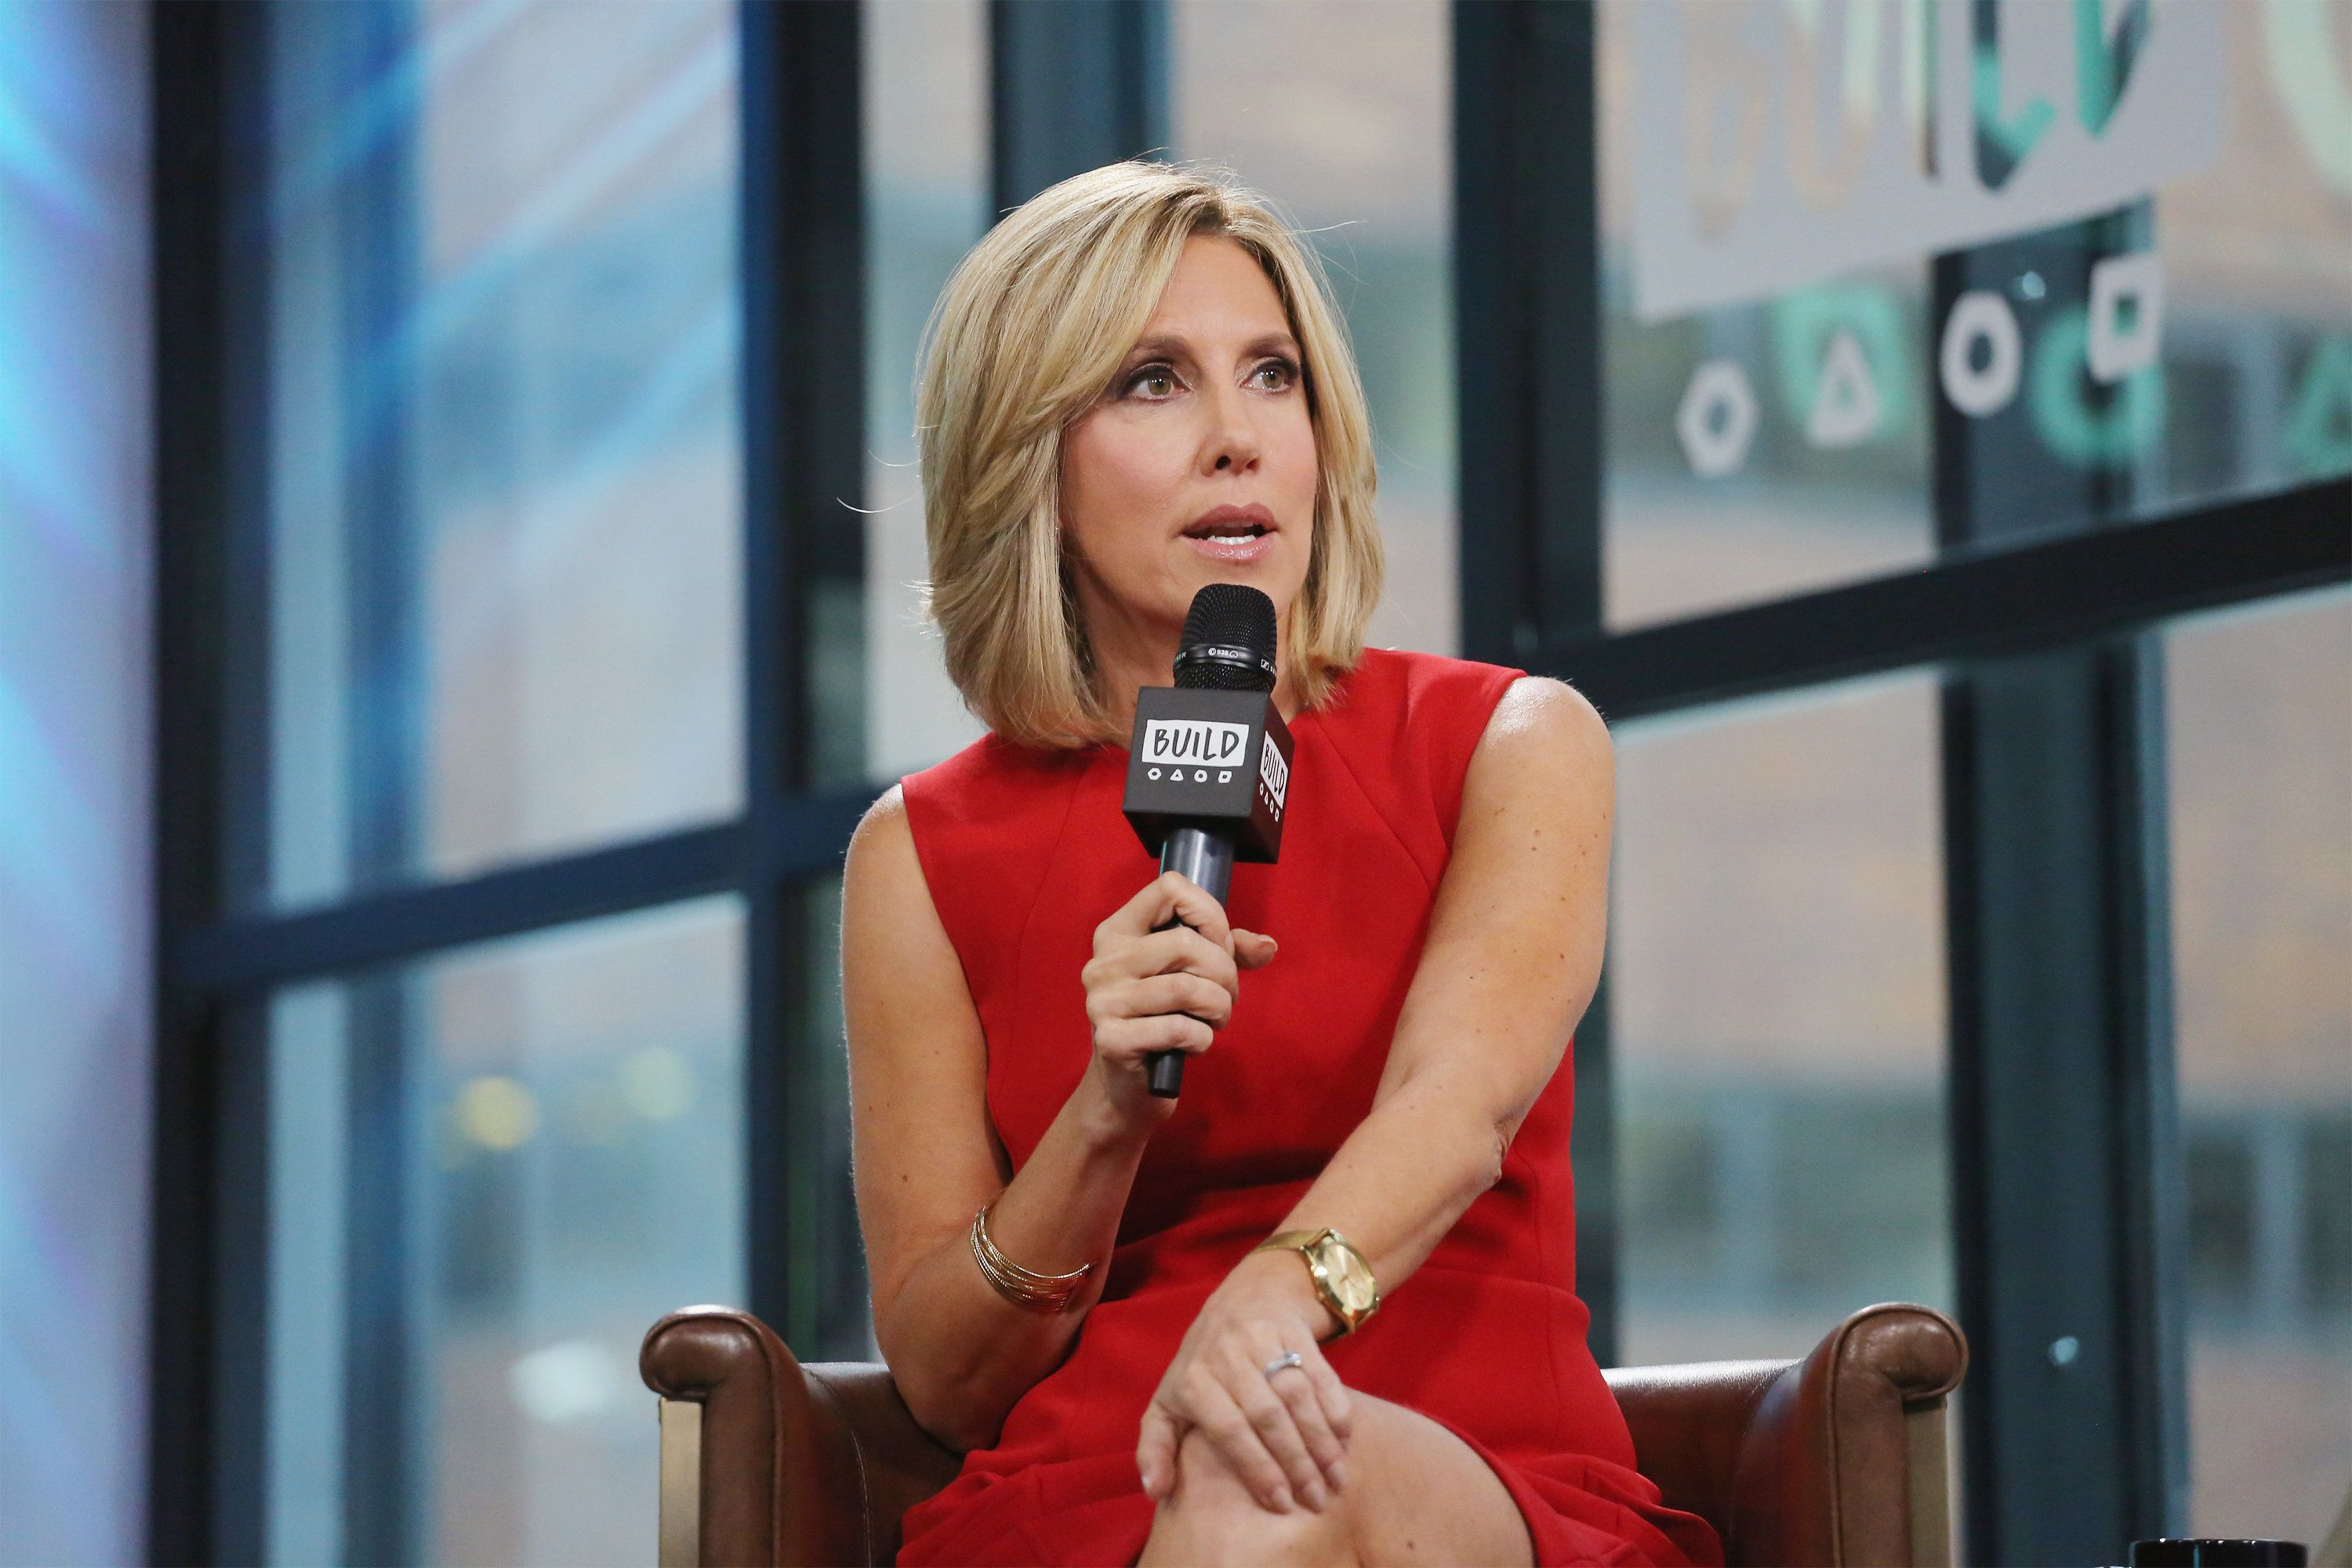 Former Fox News journalist Alisyn Camerota says she was not only sexually harassed at the network, she was also bullied